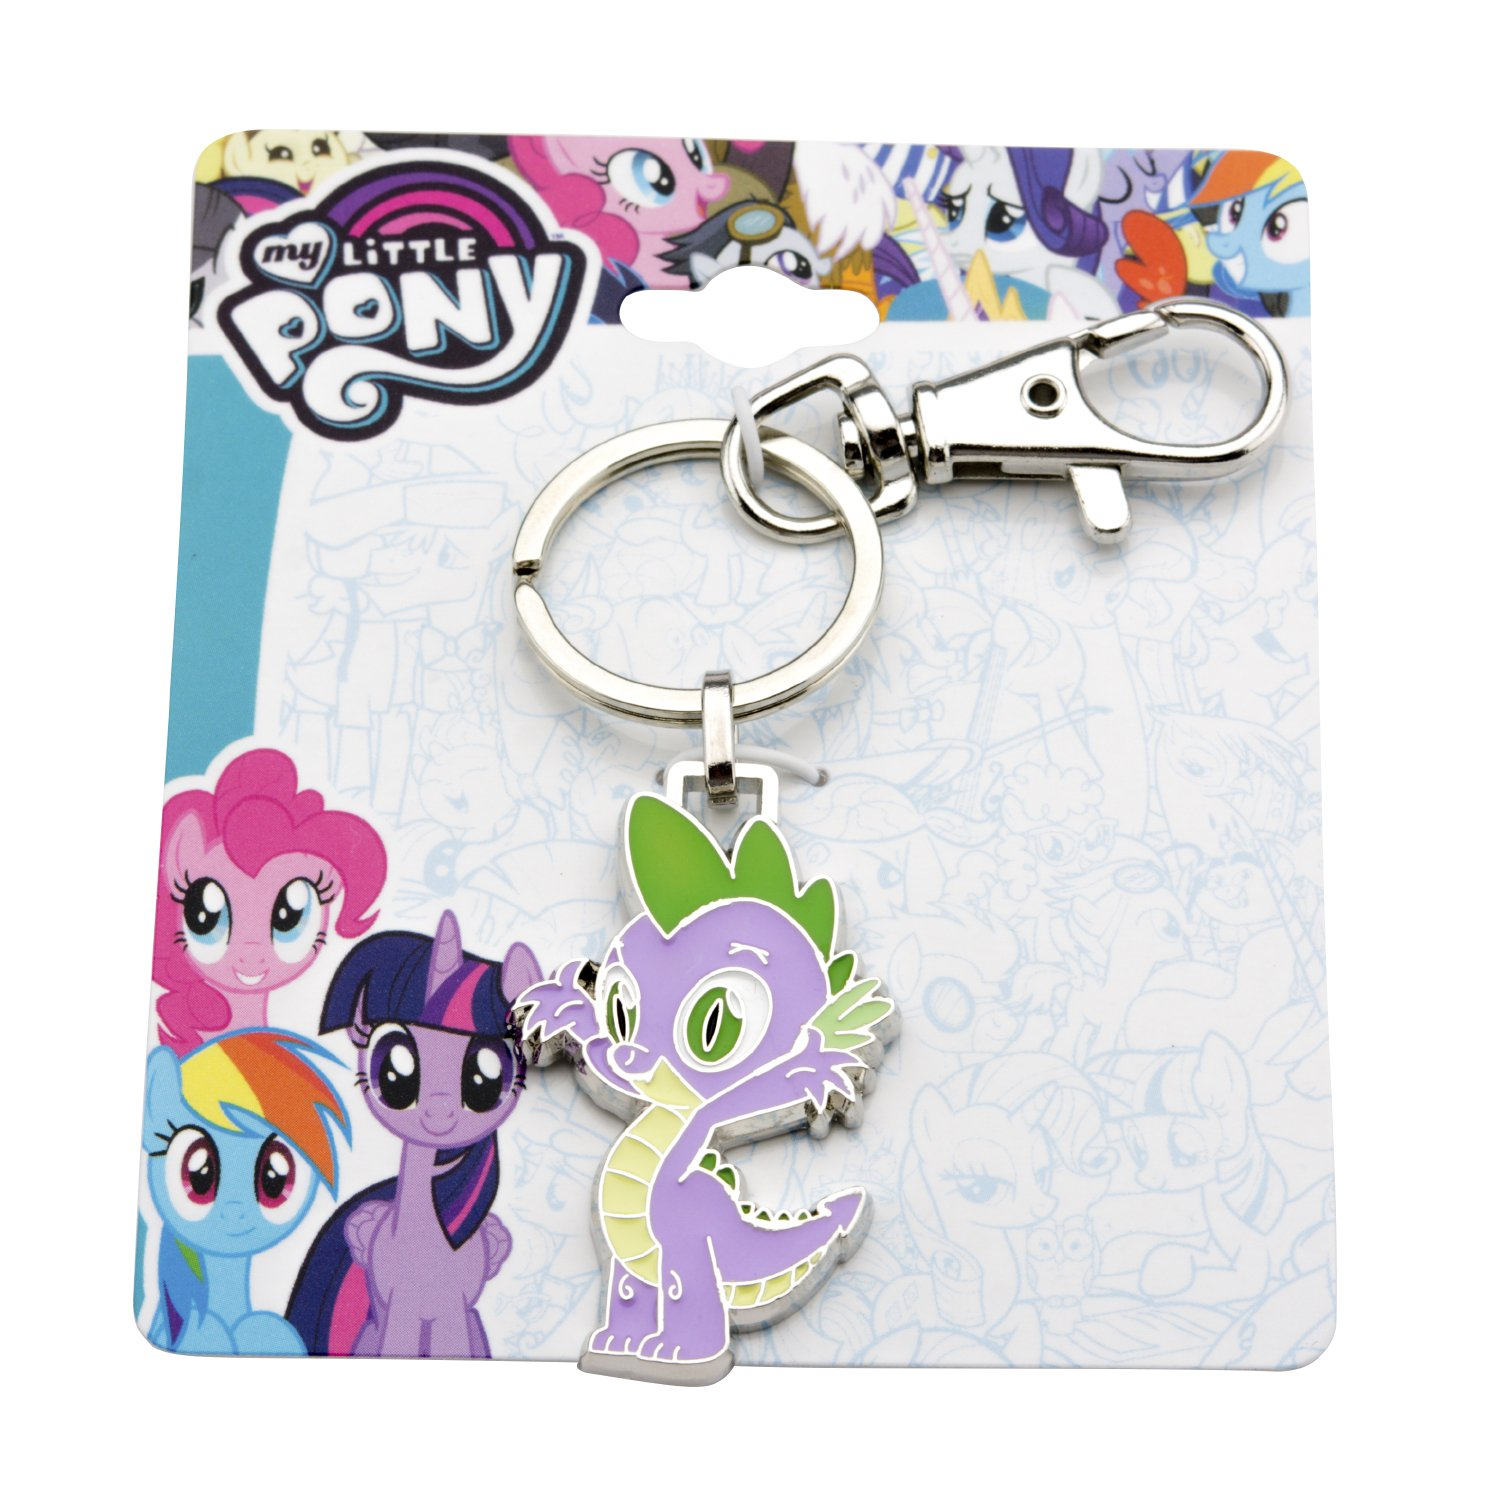 My Little Pony Spike the Dragon Stainless Llavero